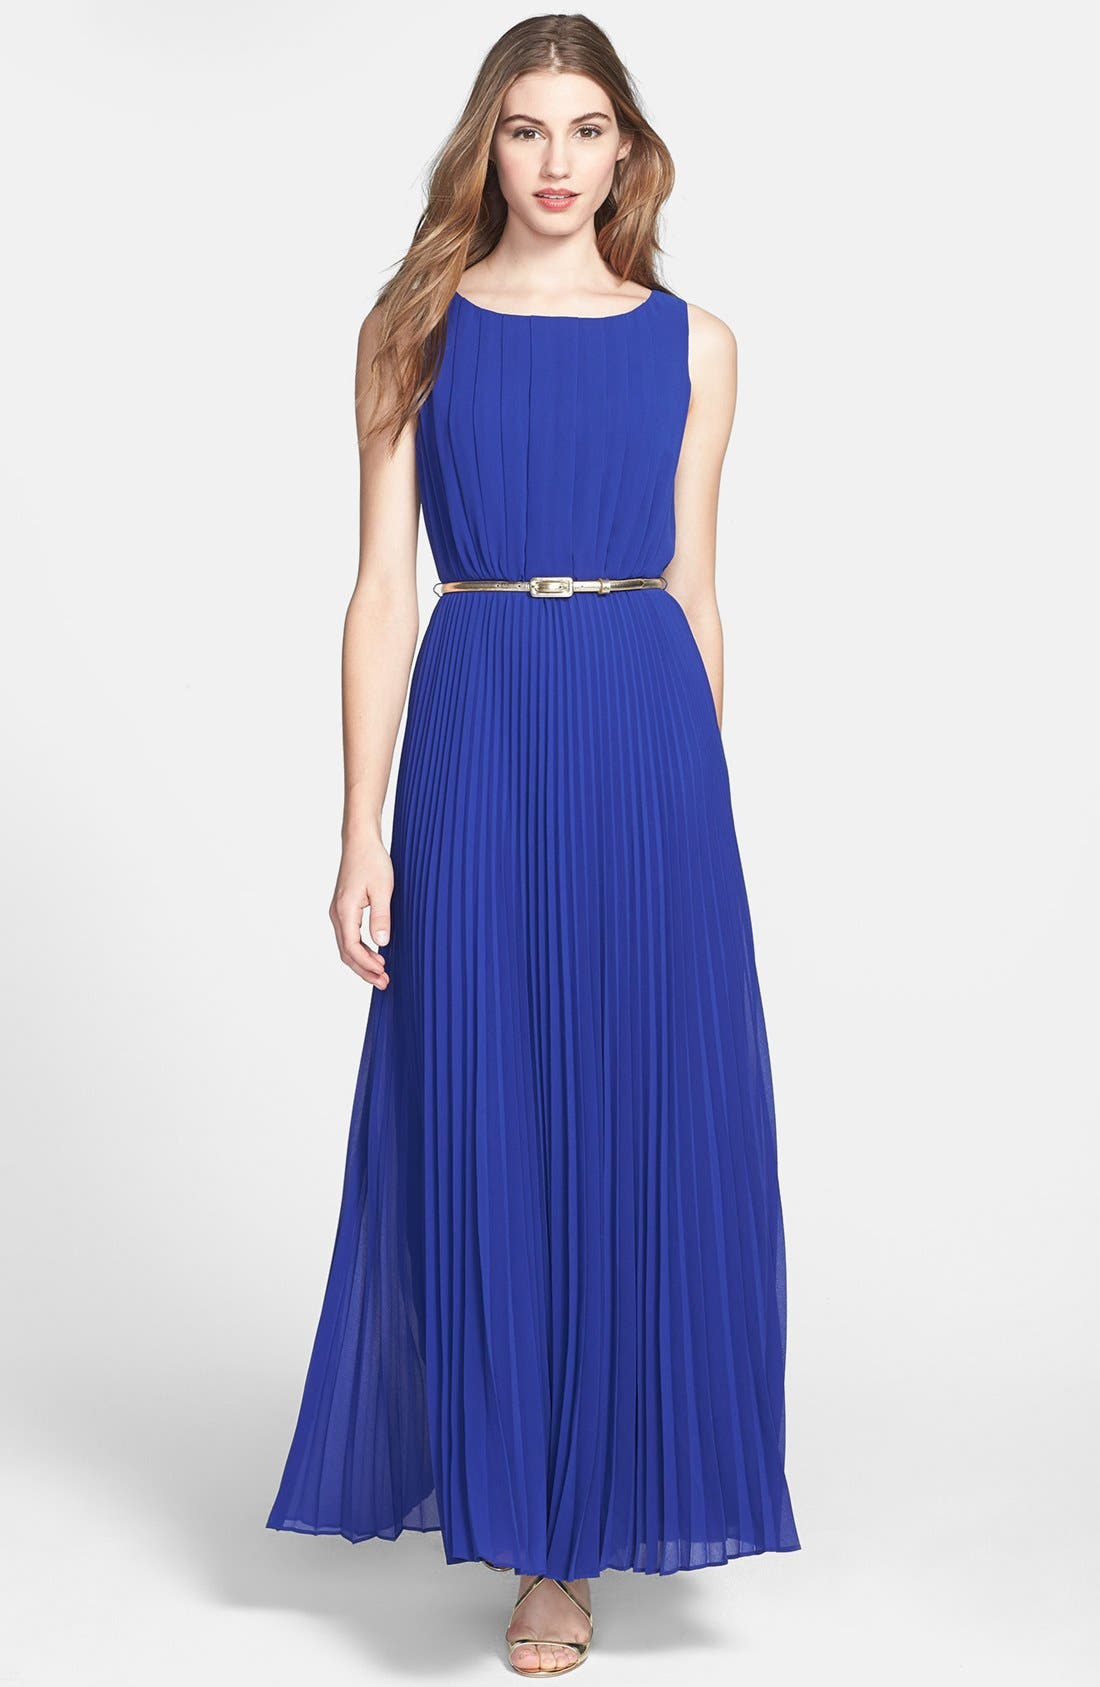 Pleat Chiffon Maxi Dress,                         Main,                         color, Royal